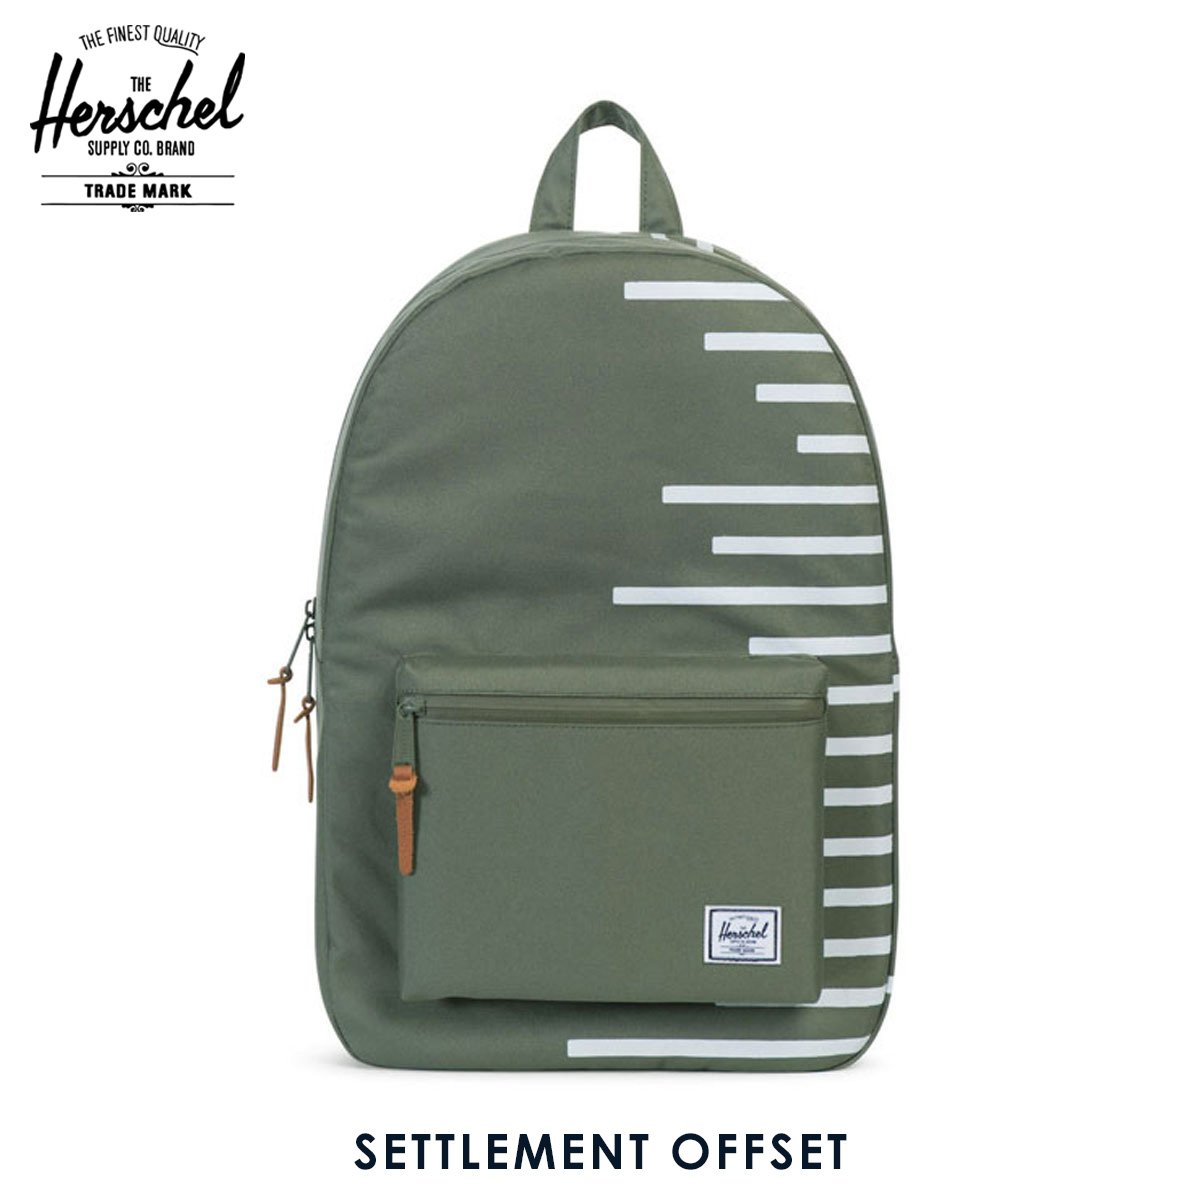 483e7cd38cb Herschel Herschel Supply regular sale shop bag rucksack SETTLEMENT OFFSET  10005-01041-OS DEEP LICHEN GREEN BLANC DE BLANC STRIPES 20P05Nov16